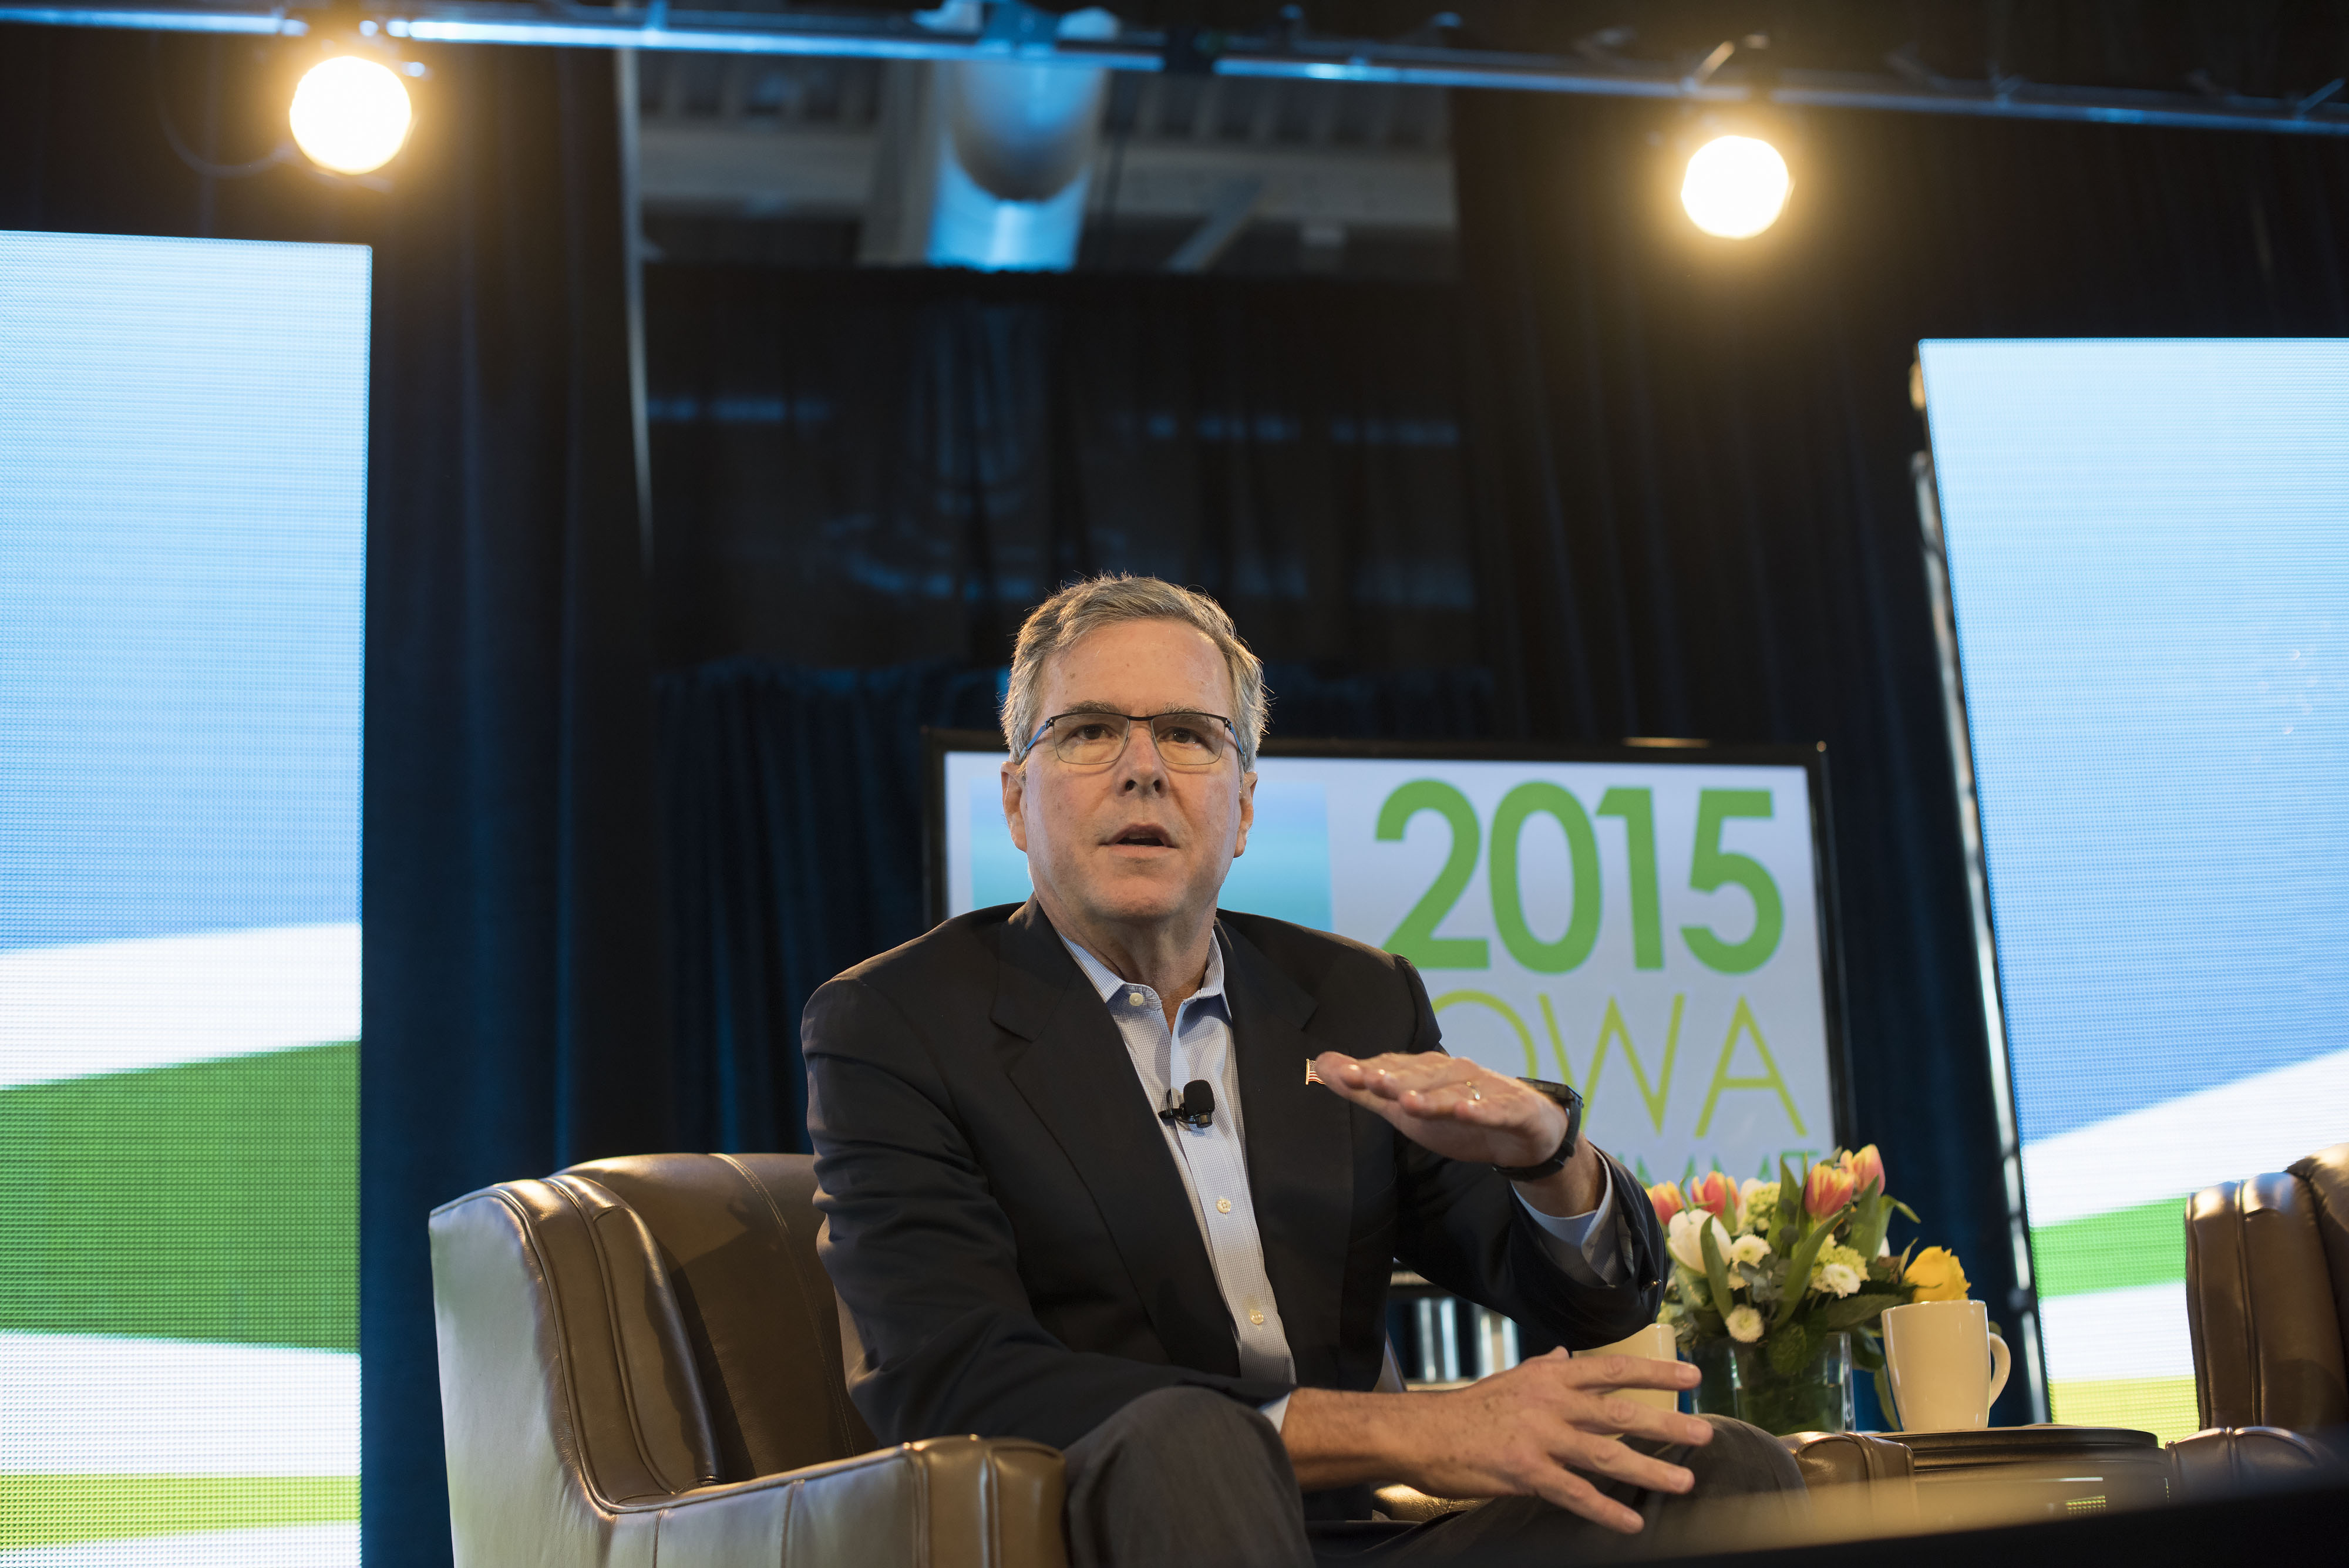 Jeb Bush, former governor of Florida, speaks during the Iowa Ag Summit at the Iowa State Fairgrounds in Des Moines, Iowa on March 7, 2015